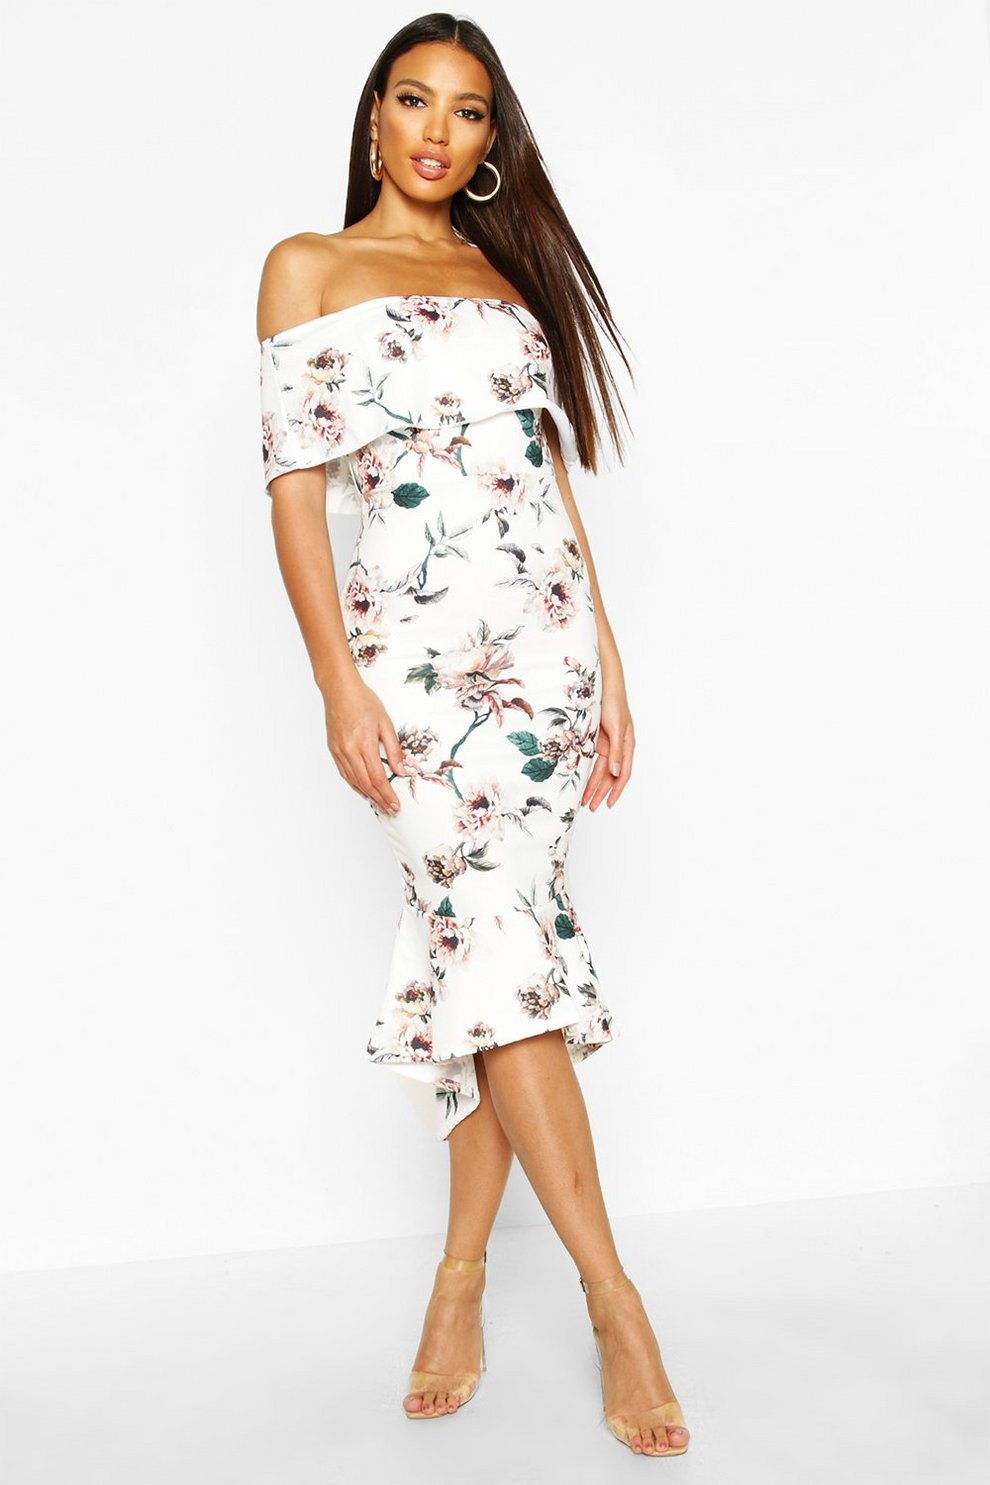 Shop Offer Online Boohoo Maternity Floral Bardot Midi Dress Buy Cheap Release Dates Buy Cheap Manchester Clearance Original Clearance Exclusive VMZibuWU